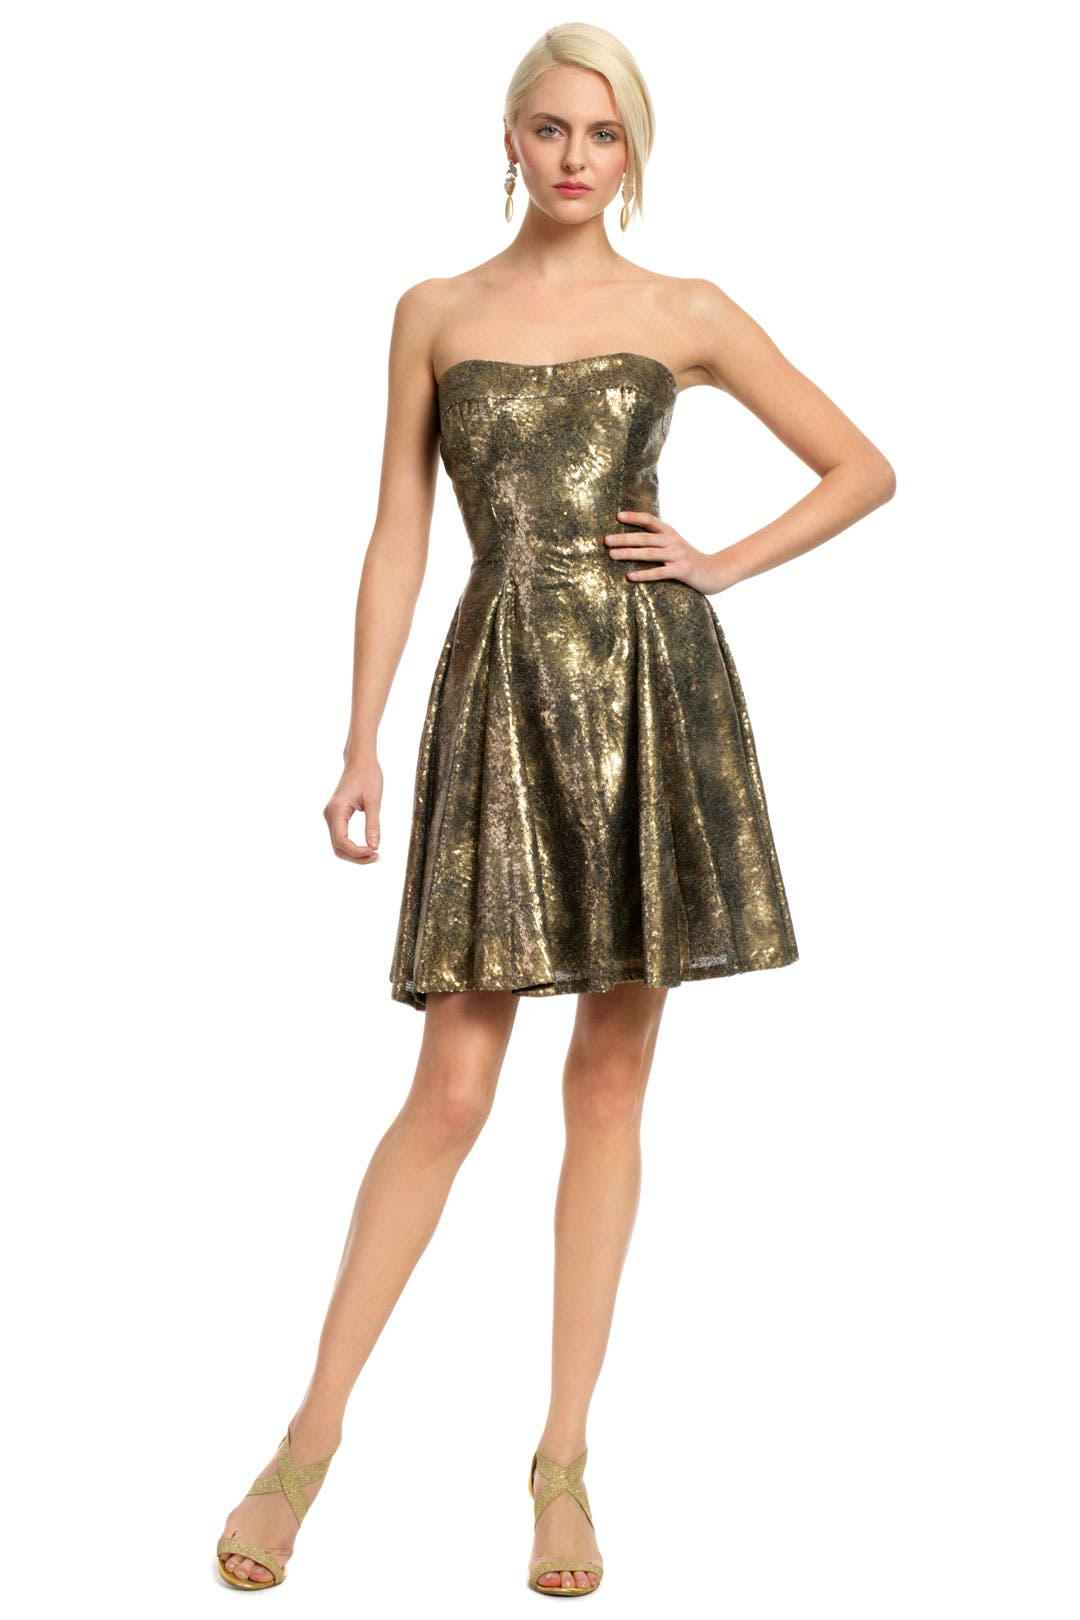 Copper Sequin Confetti Dress by Peter Soronen